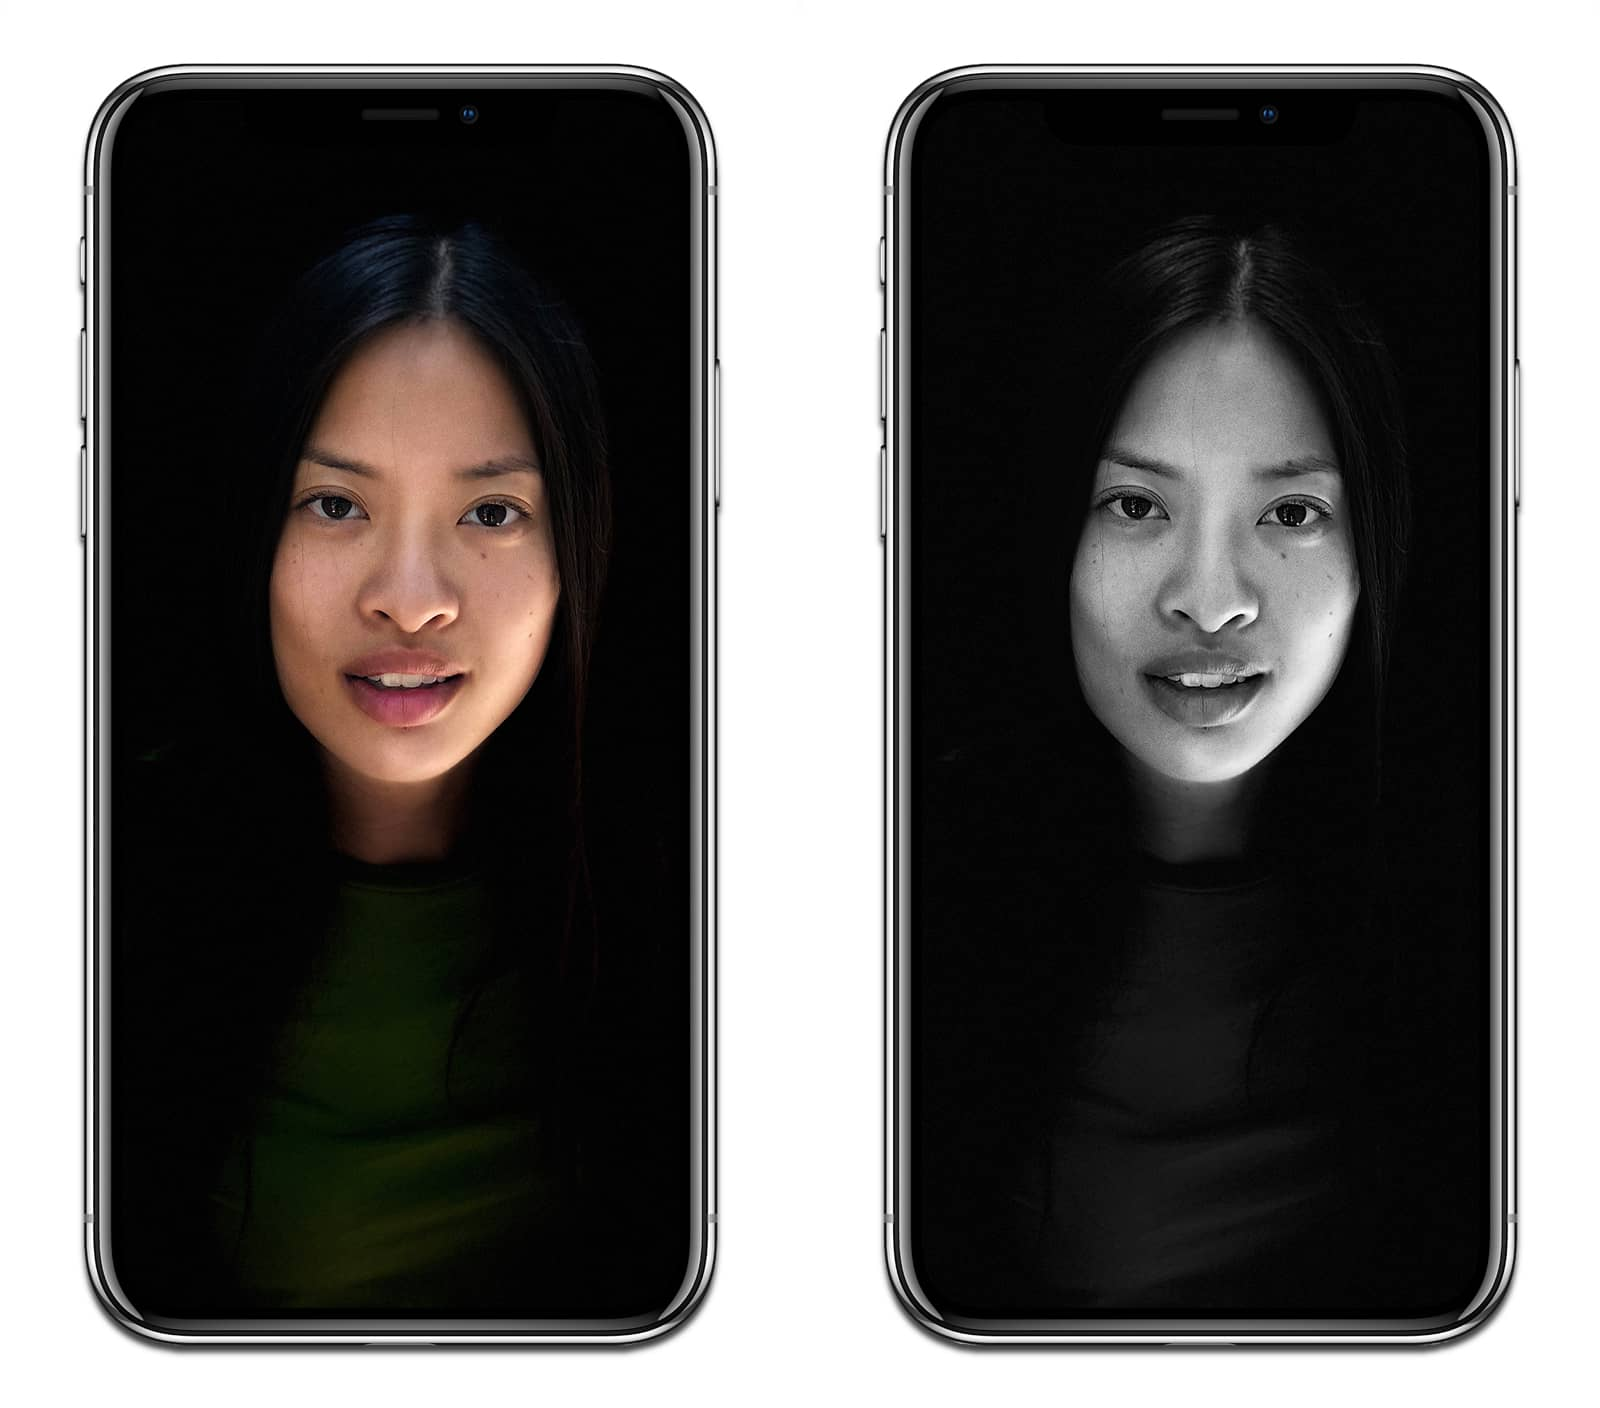 Screenshots of portrait lighting on the iPhone X